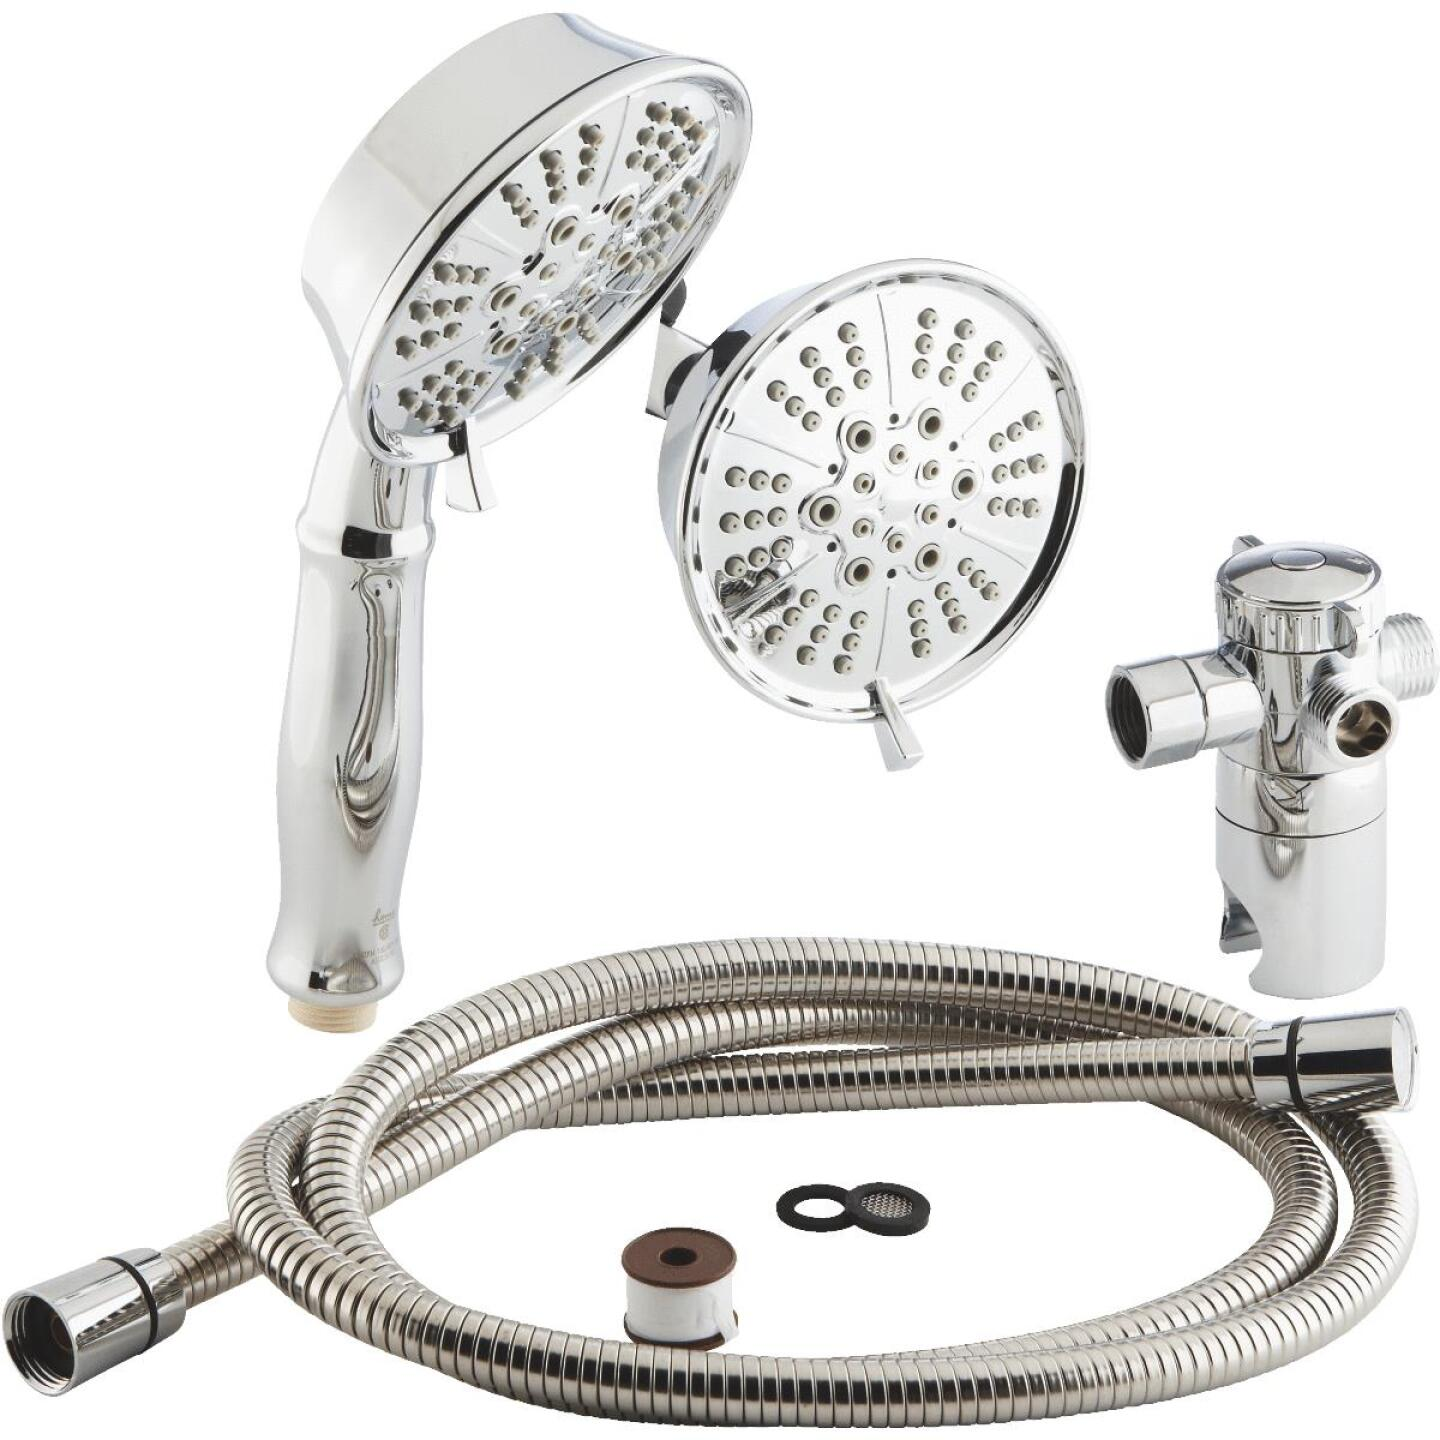 Home Impressions 5-Spray 1.75 GPM Combo Hand-Held Shower & Showerhead, Chrome Image 2